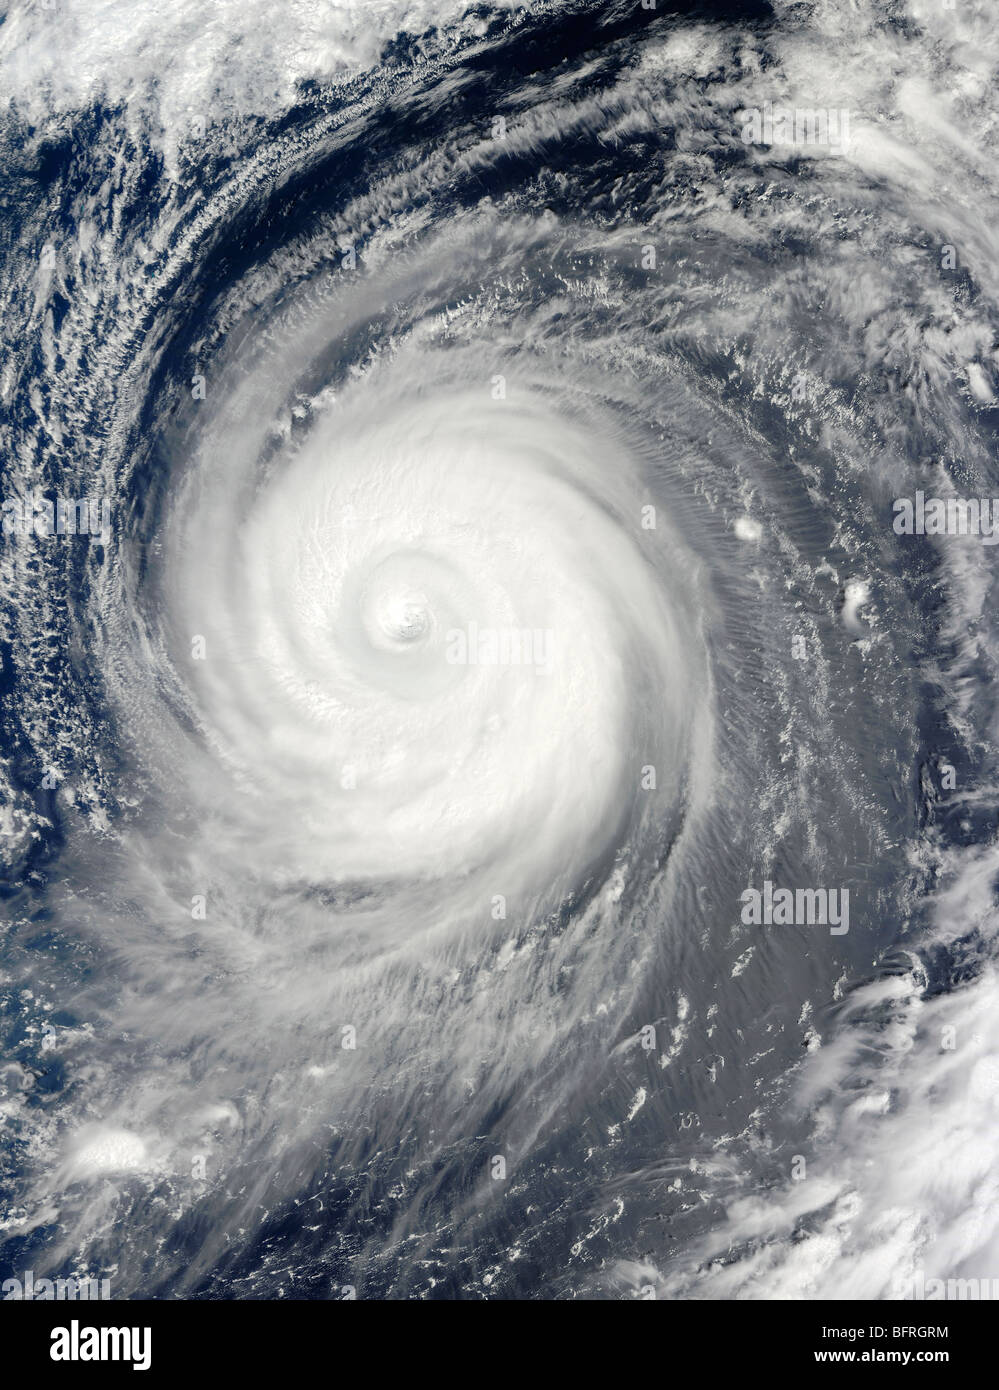 September 18, 2009 - Typhoon Choi-wan south of Japan, Pacific Ocean. - Stock Image